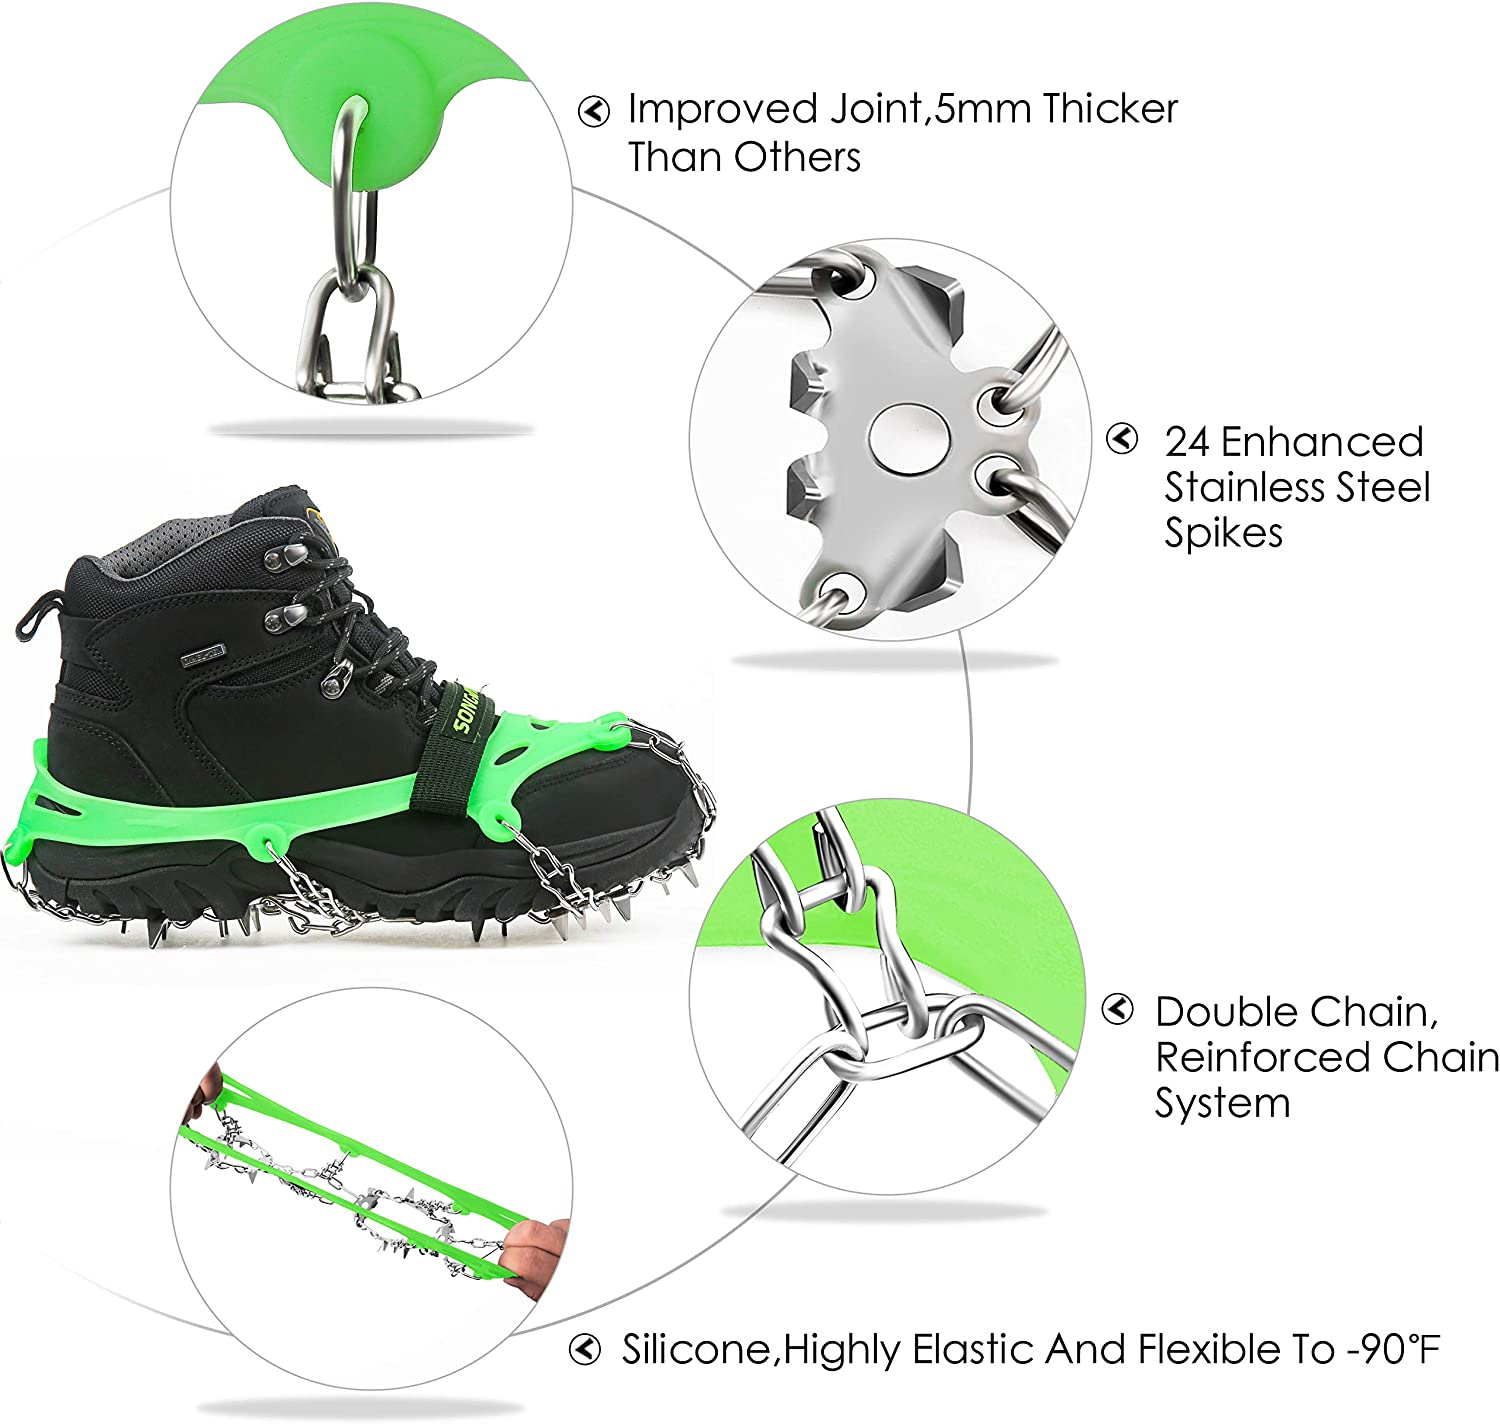 EnergeticSky 24 Spikes Crampons Ice Cleats Traction Snow Grips for Boots Shoes,Anti-Slip Stainless Steel Spikes,Microspikes for Hiking Fishing Walking Climbing Jogging Mountaineering.